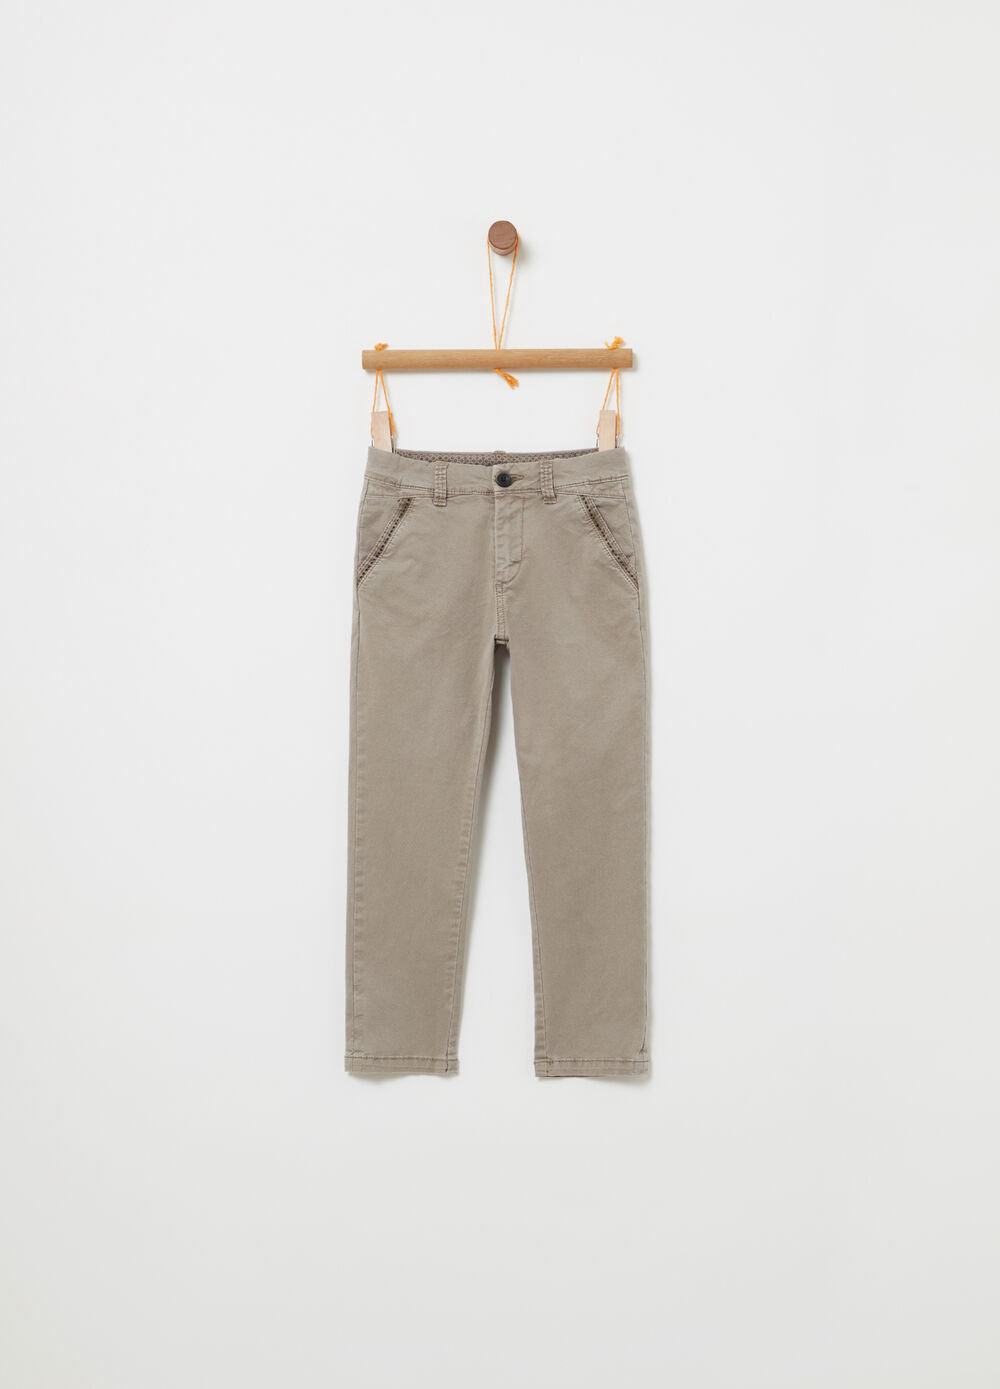 Twill chino trousers with functional pockets